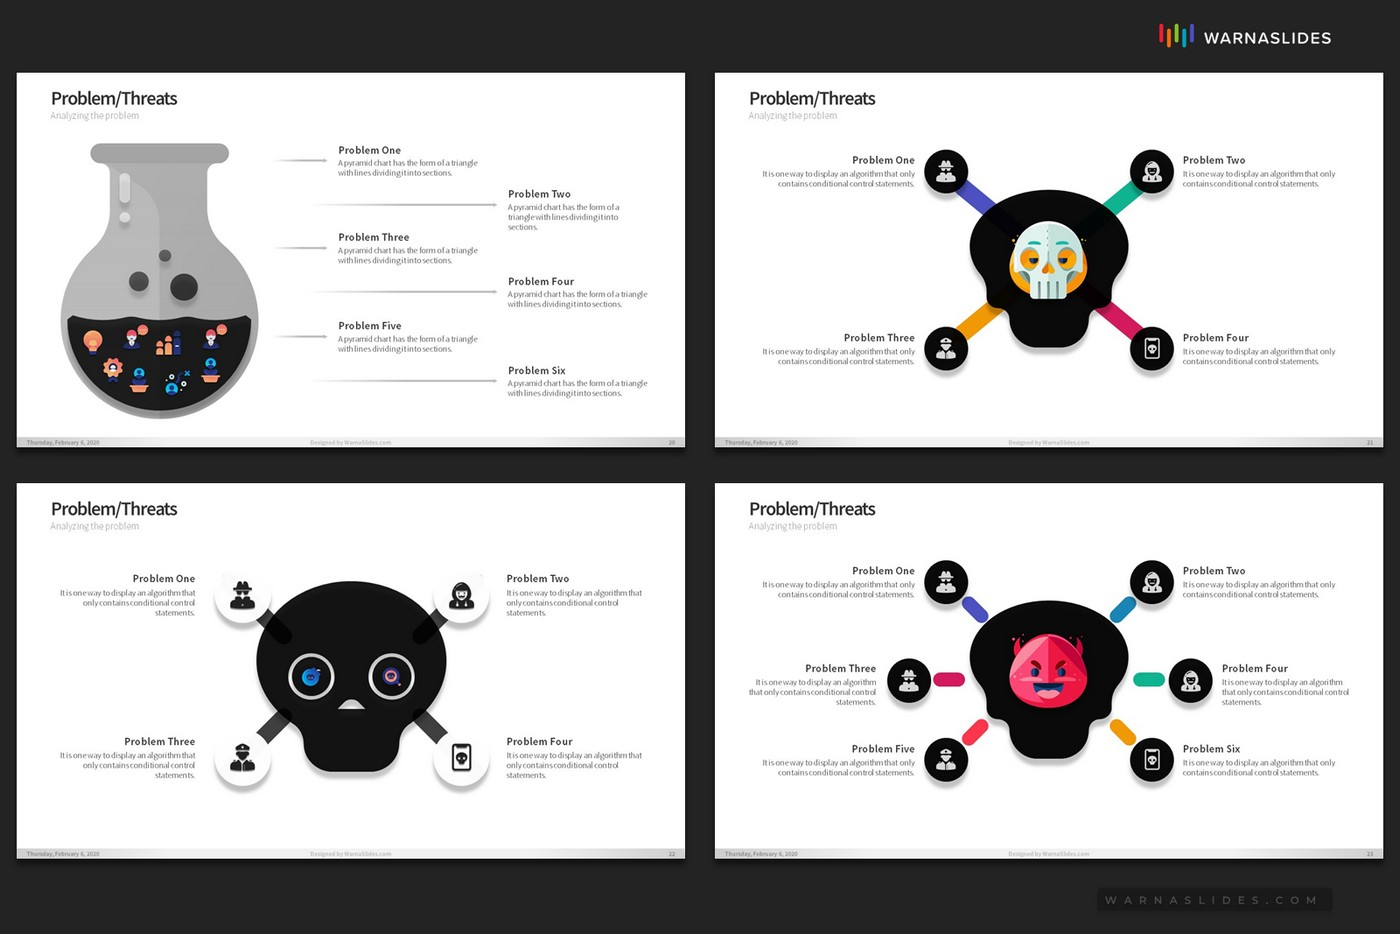 Problem-Threats-Risk-Management-Weaknesses-Services-Brainstorm-PowerPoint-Template-2020-for-Business-Pitch-Deck-Professional-Creative-Presentation-by-Warna-Slides-010